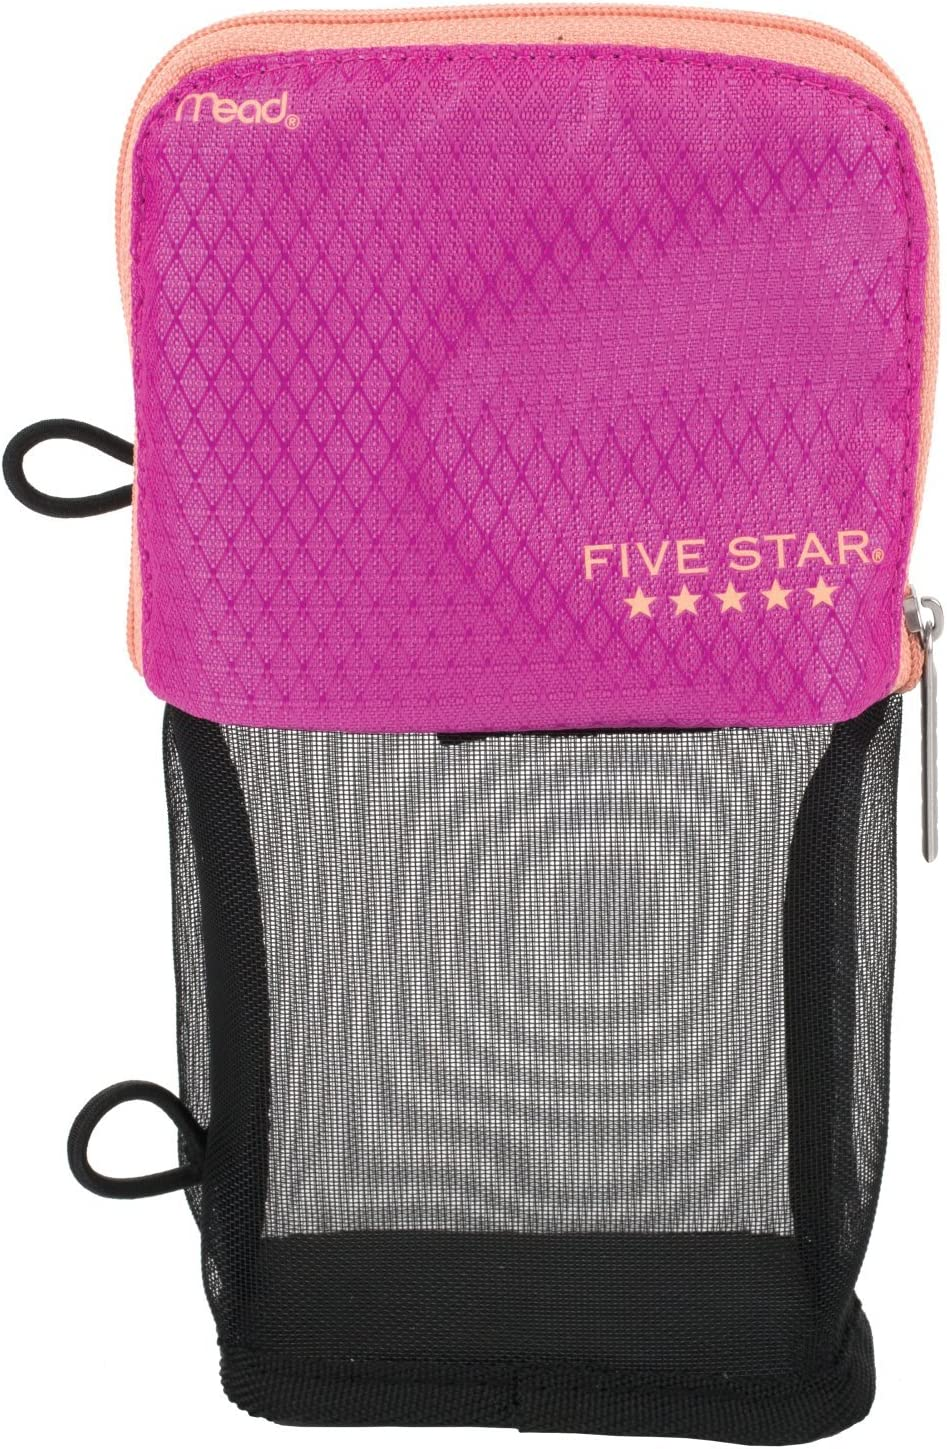 Five Star Pencil Pouch, Pen Case, Fits 3 Ring Binder, Stand 'N Store, Pink/Coral (50516CD8)